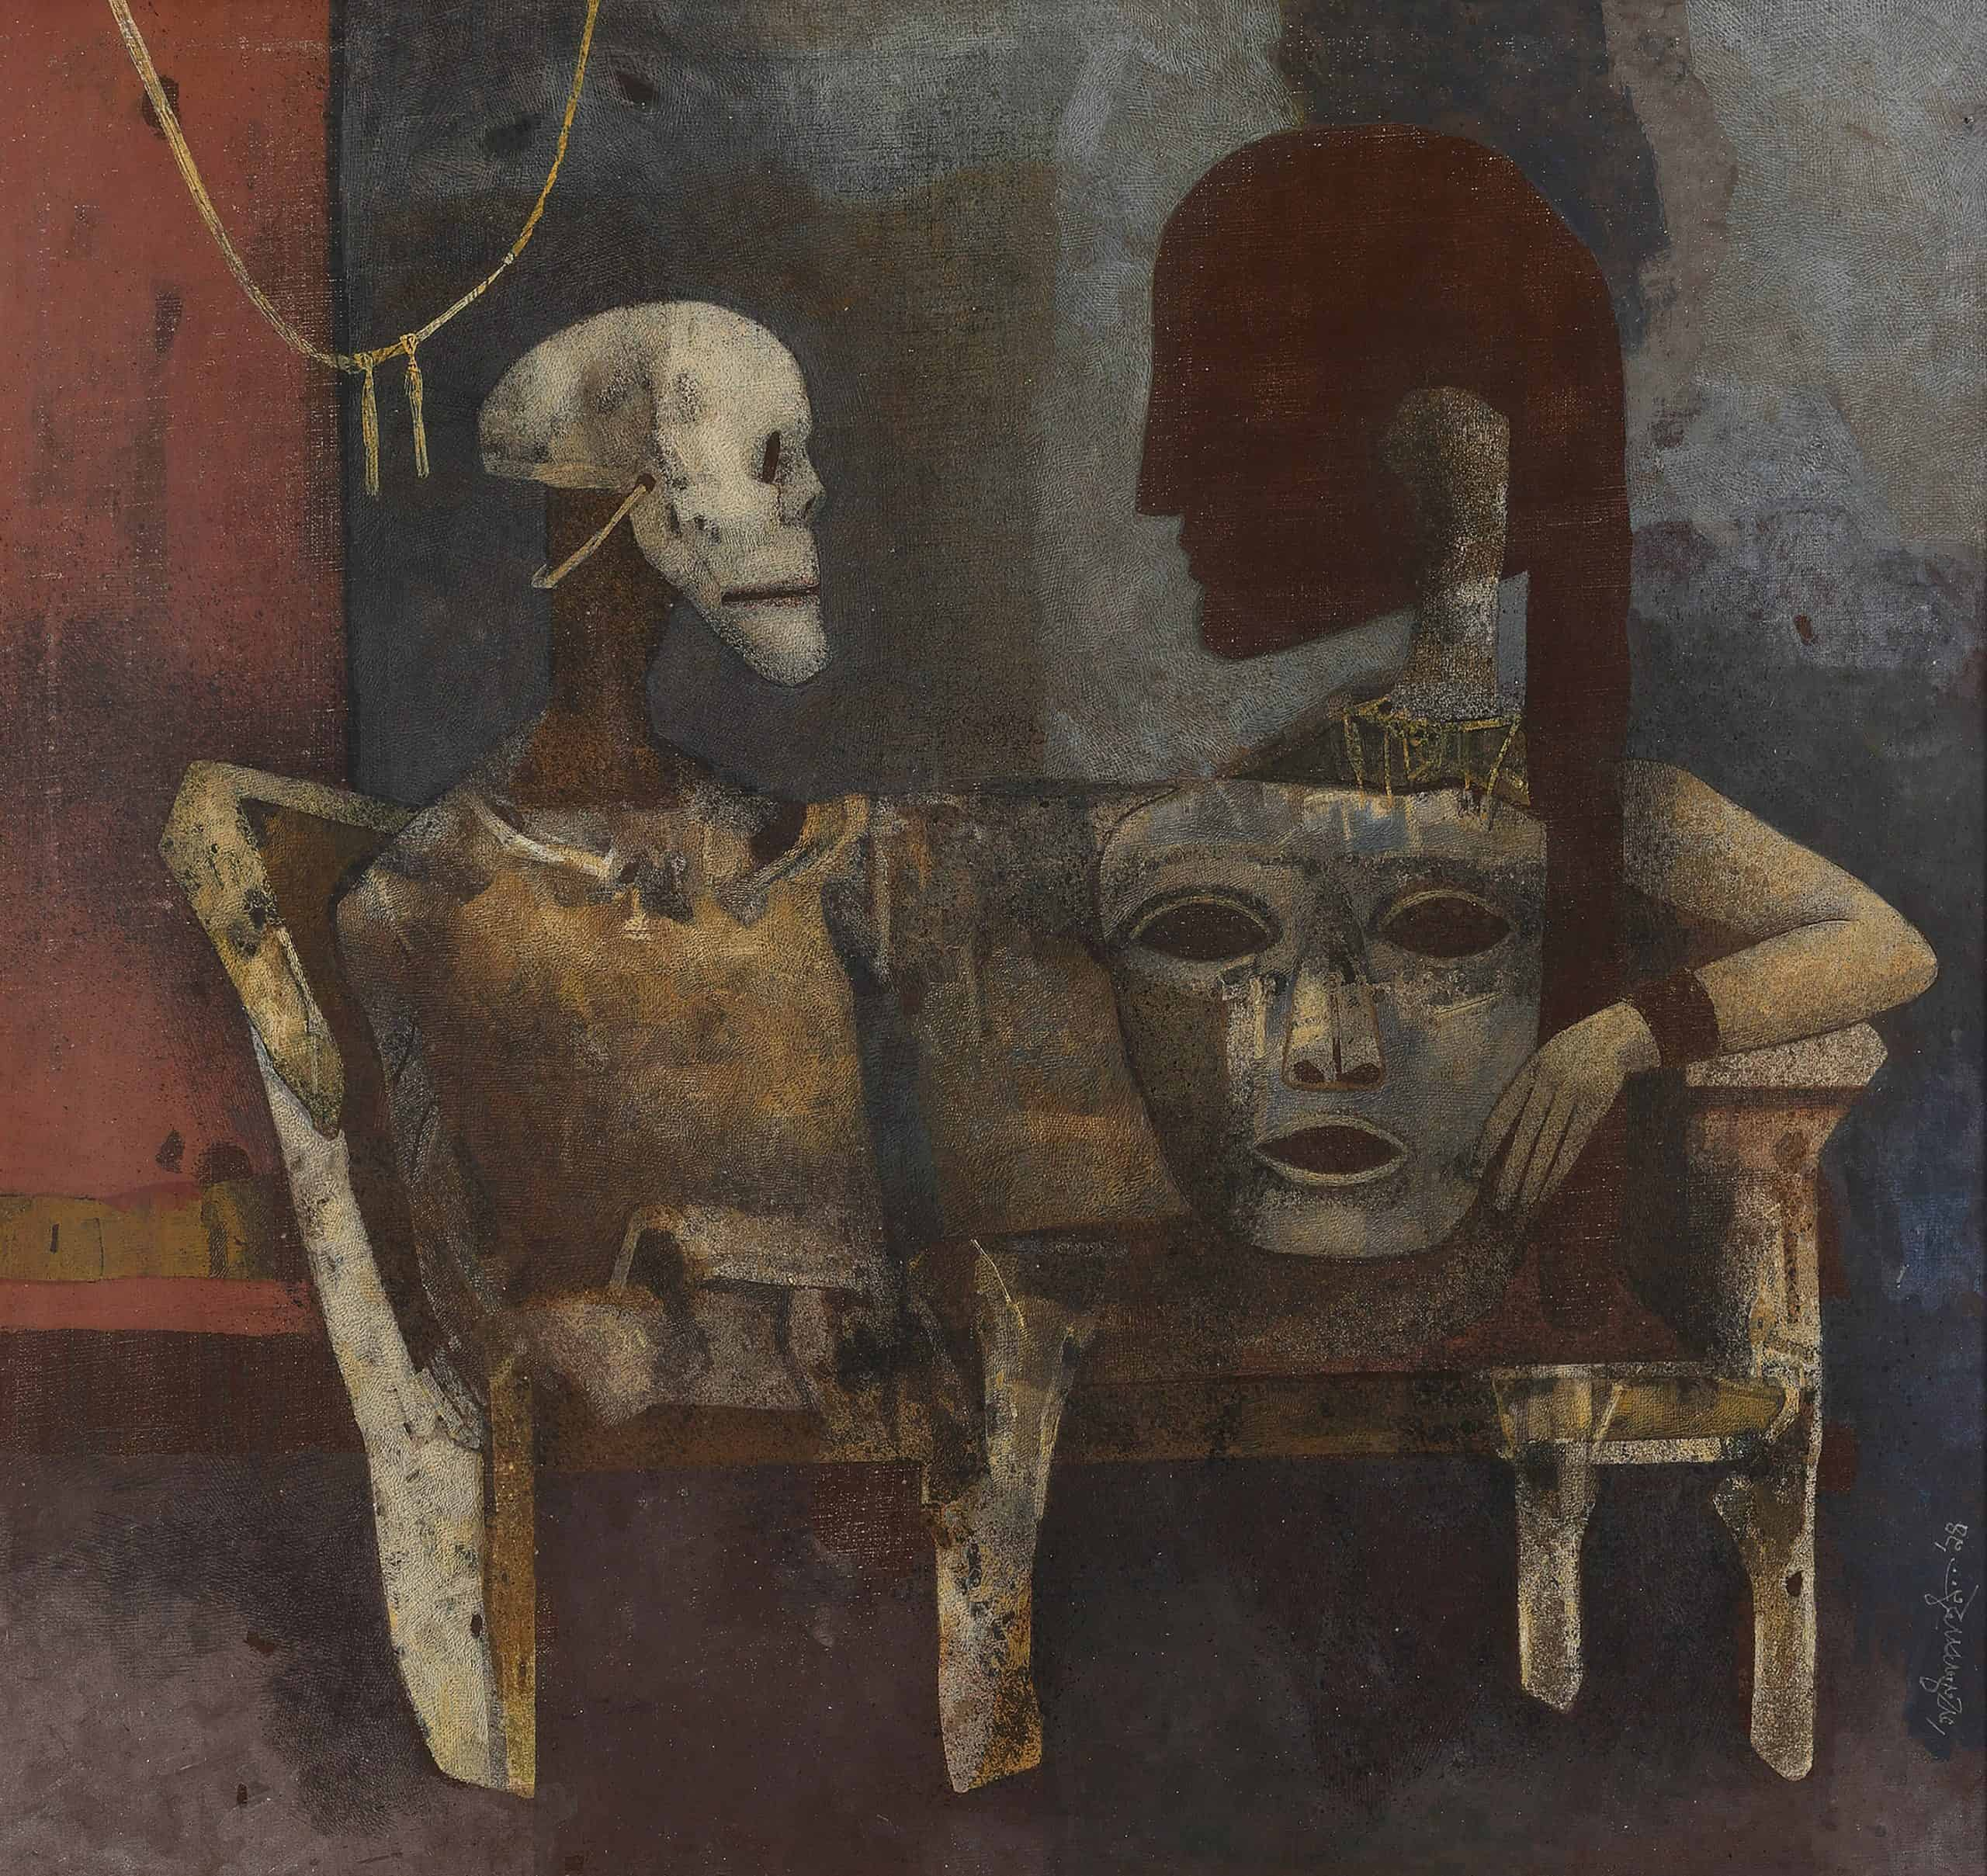 Lot 36 - Ganesh PyneGÇÖs The Masks, 1994, exceeded its pre-sale estimate of INR 55 GÇô 65 lakhs (USD 83,335 GÇô 98,485) and sold at INR 1.32 crores (USD 200,000)